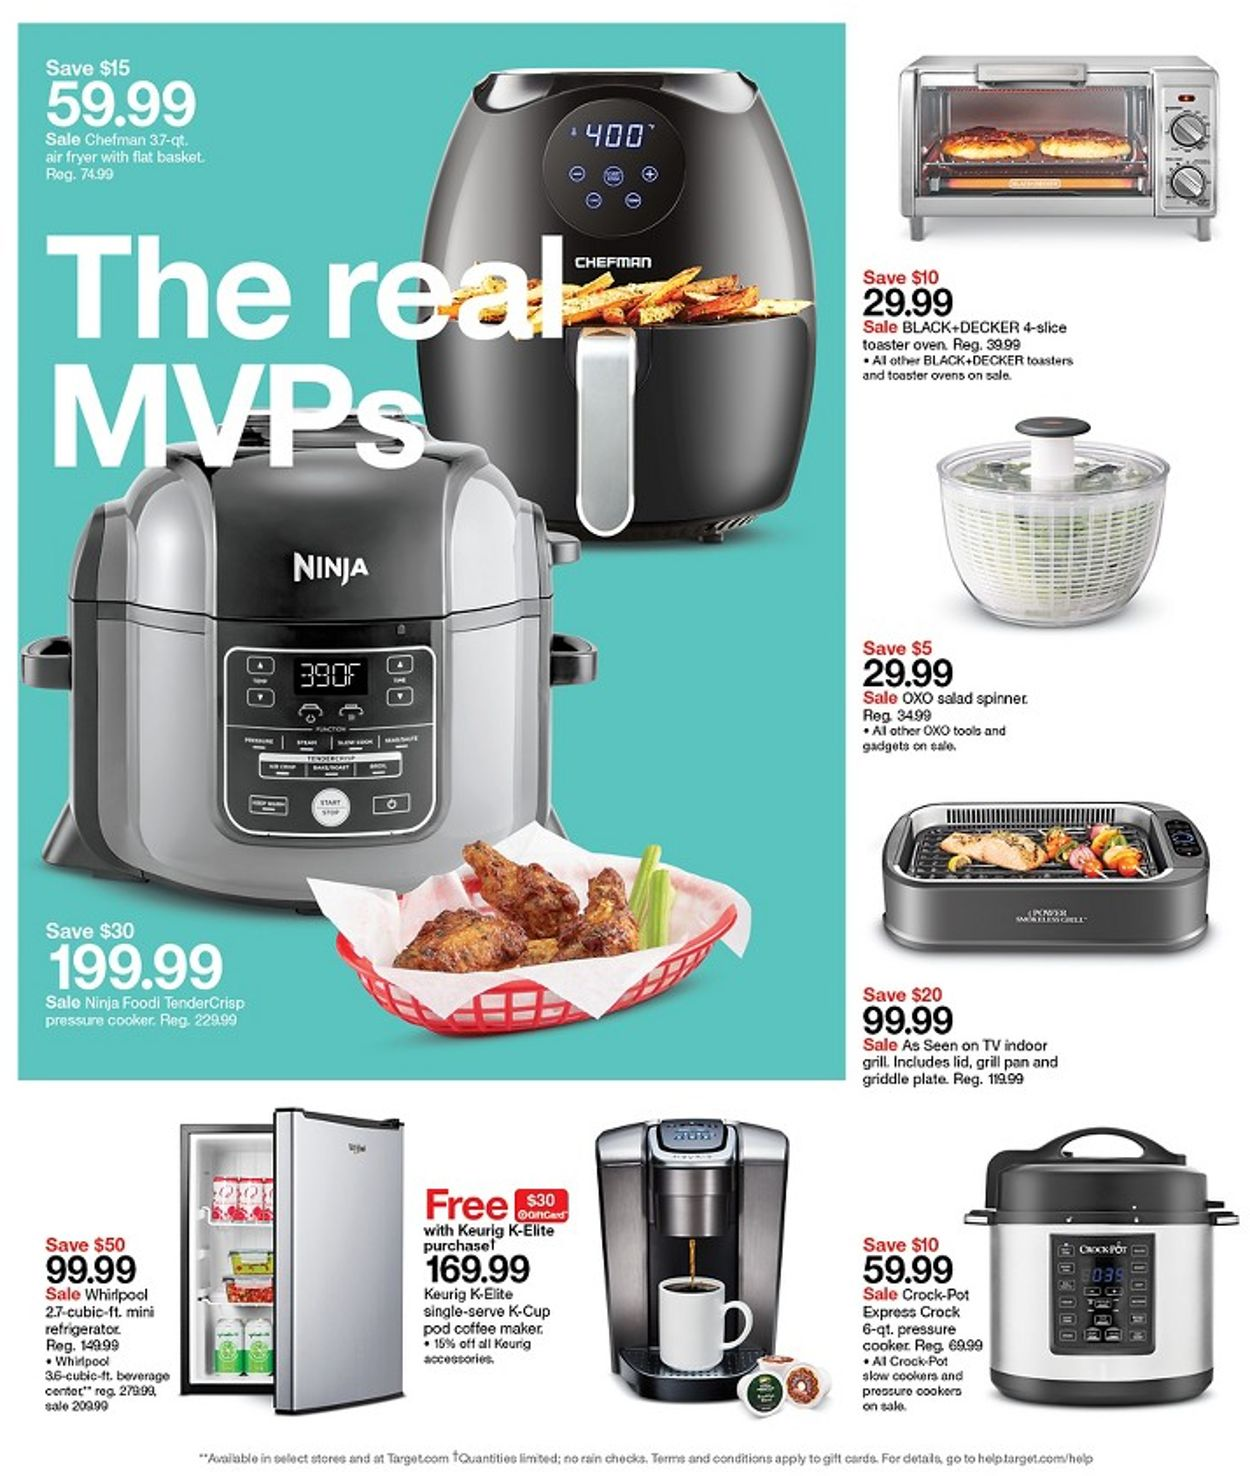 Target Current weekly ad 09/08 - 09/14/2019 16 - frequent-ads.com